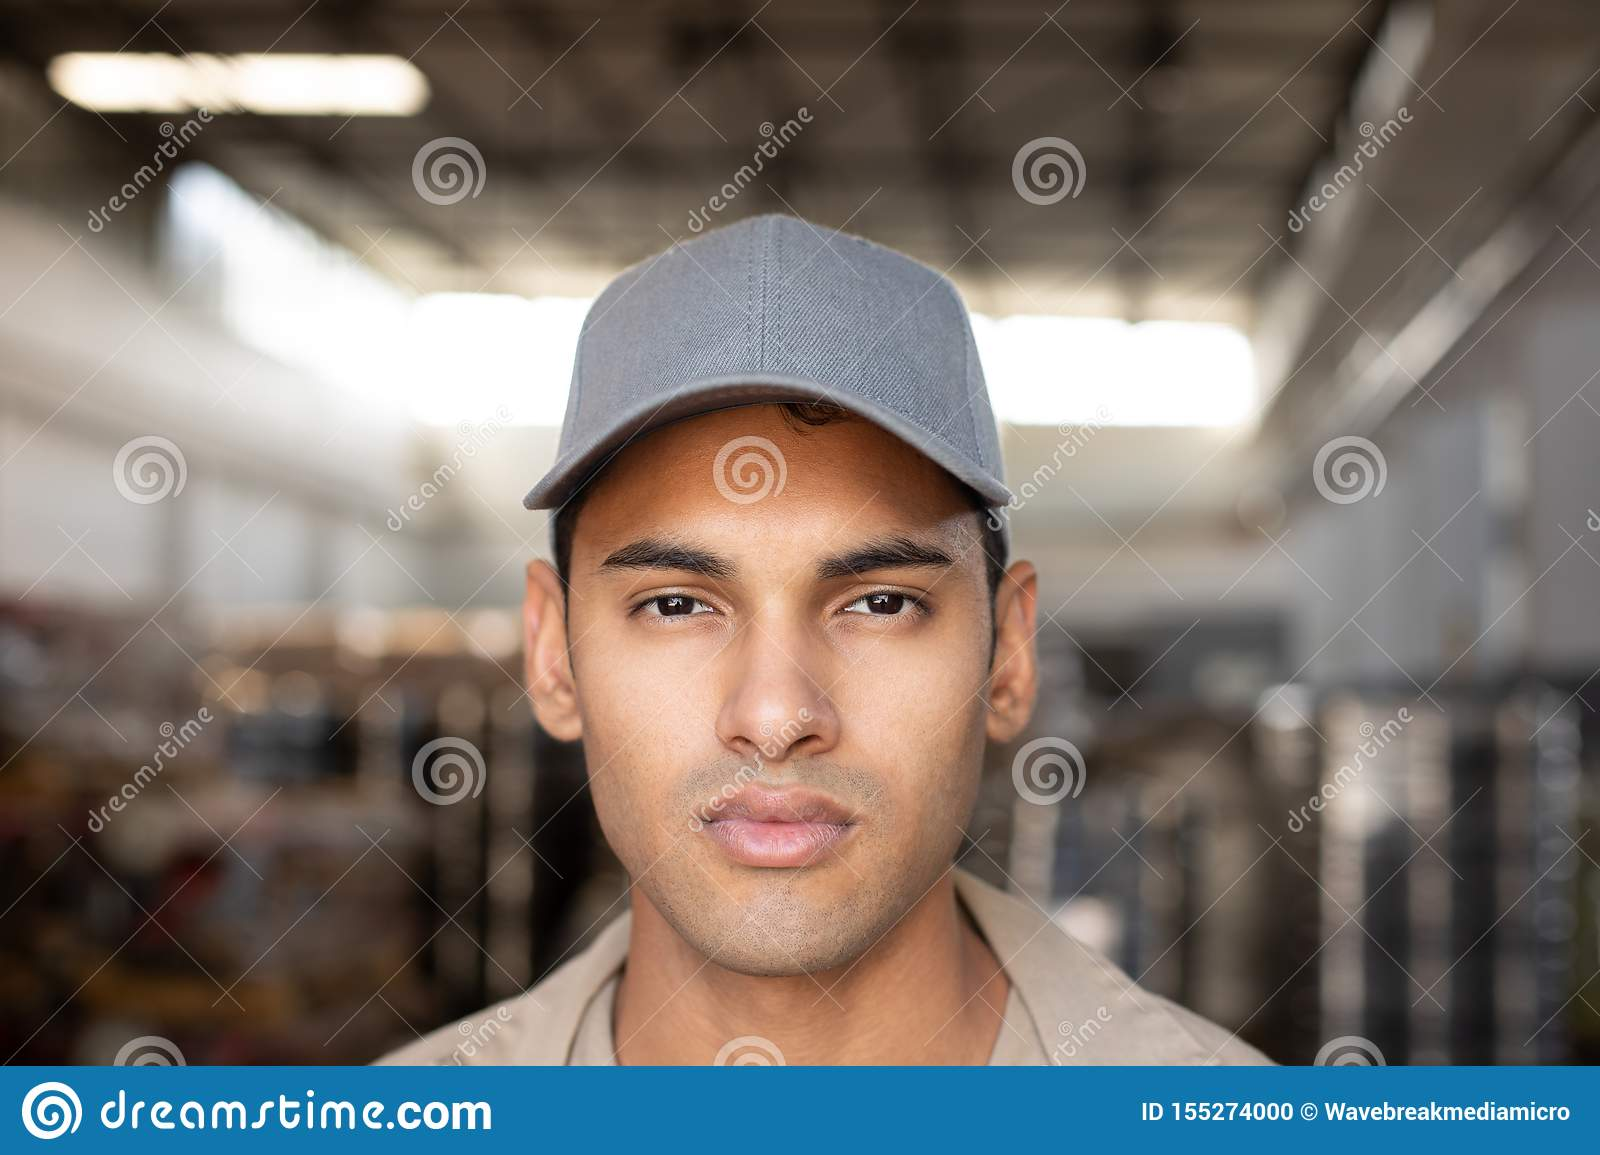 Male worker looking at camera in warehouse